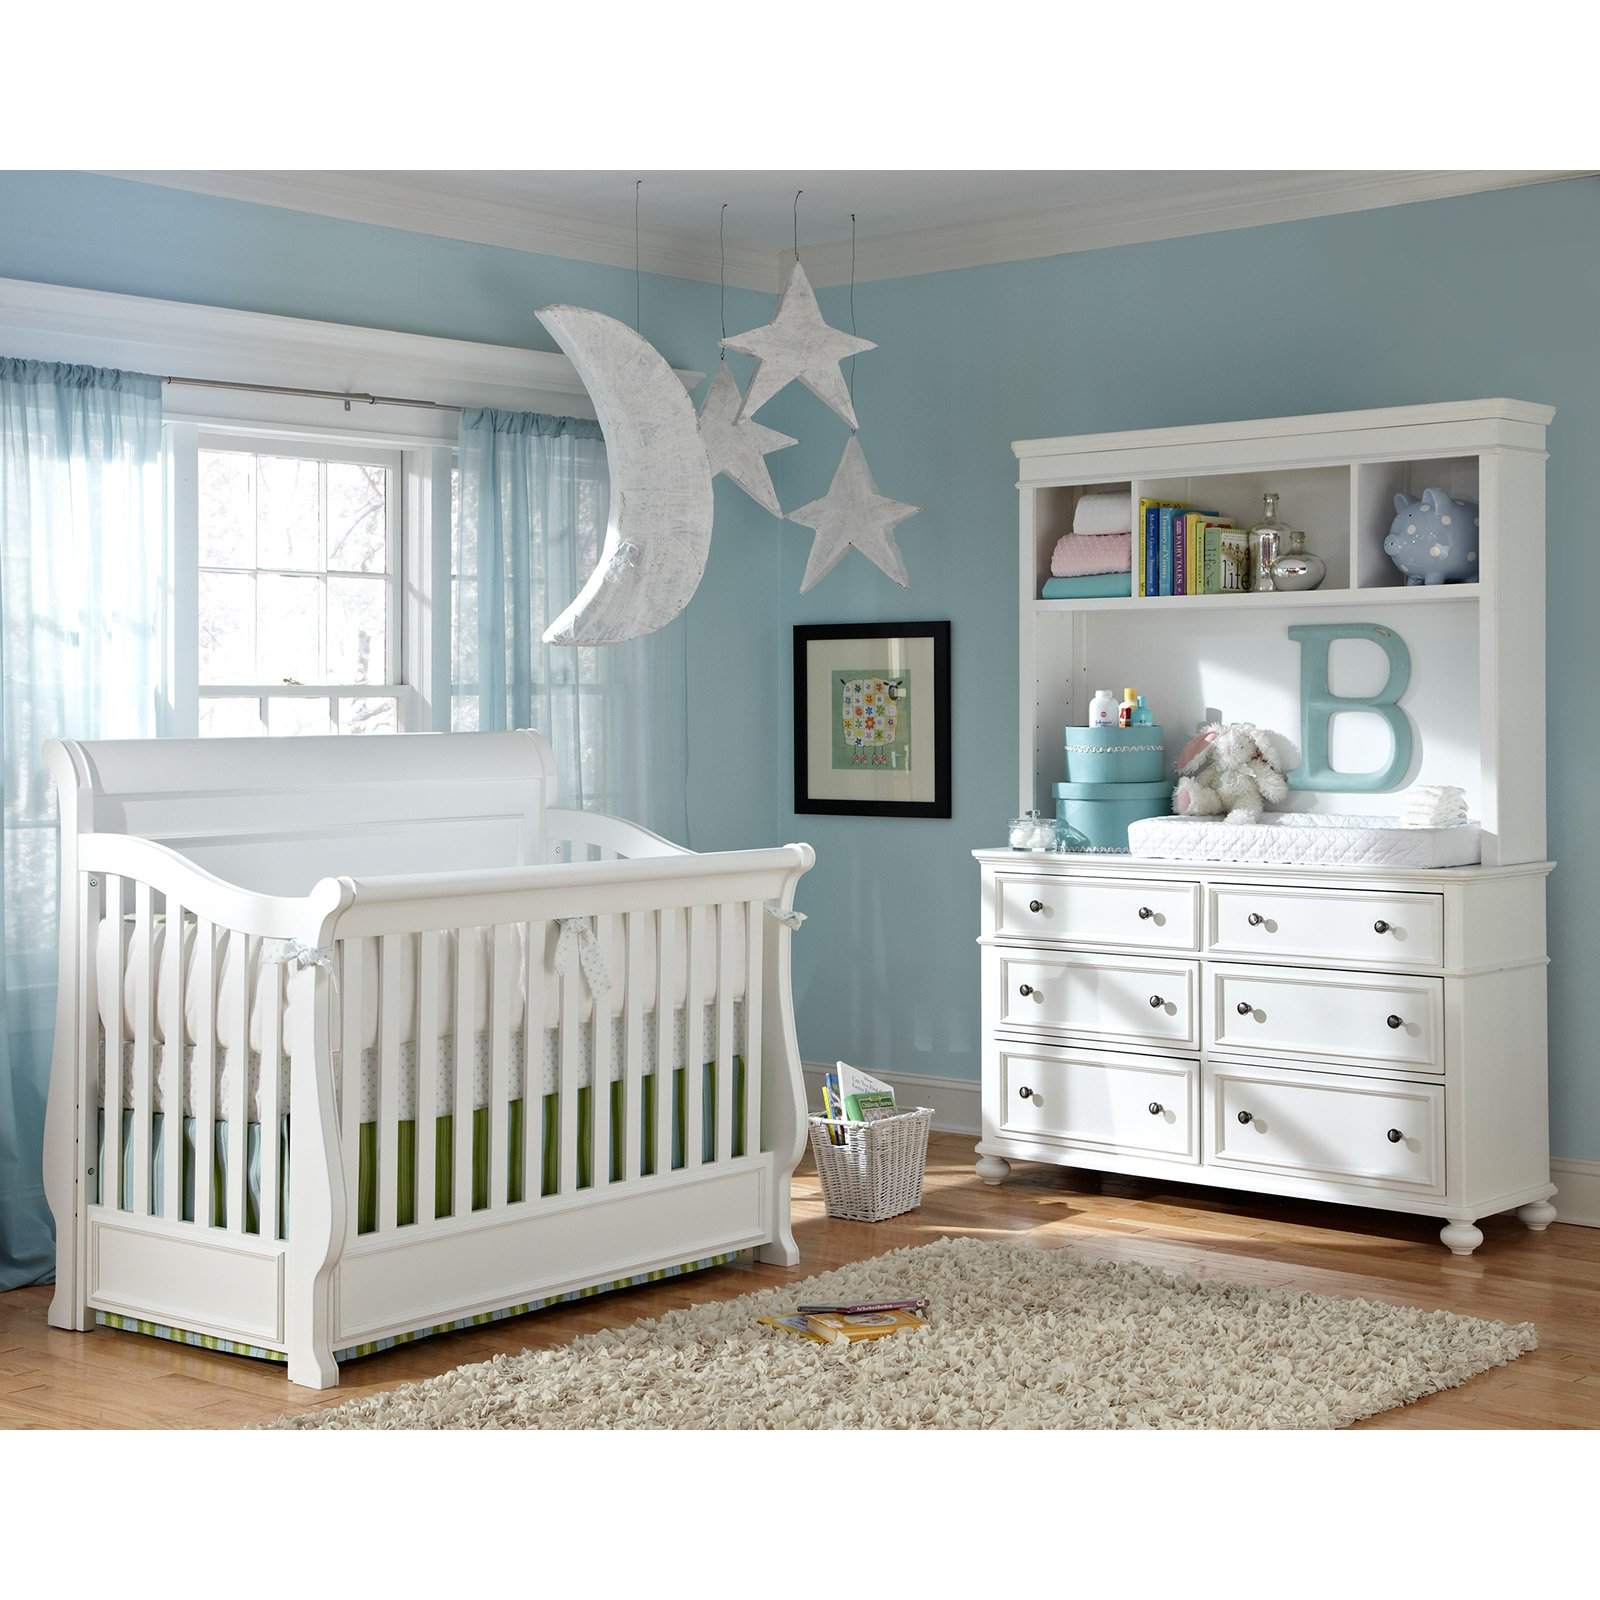 Munire Crib In White Plus White Armoire On Wooden Floor With Wheat Carpet  Matched With Blue